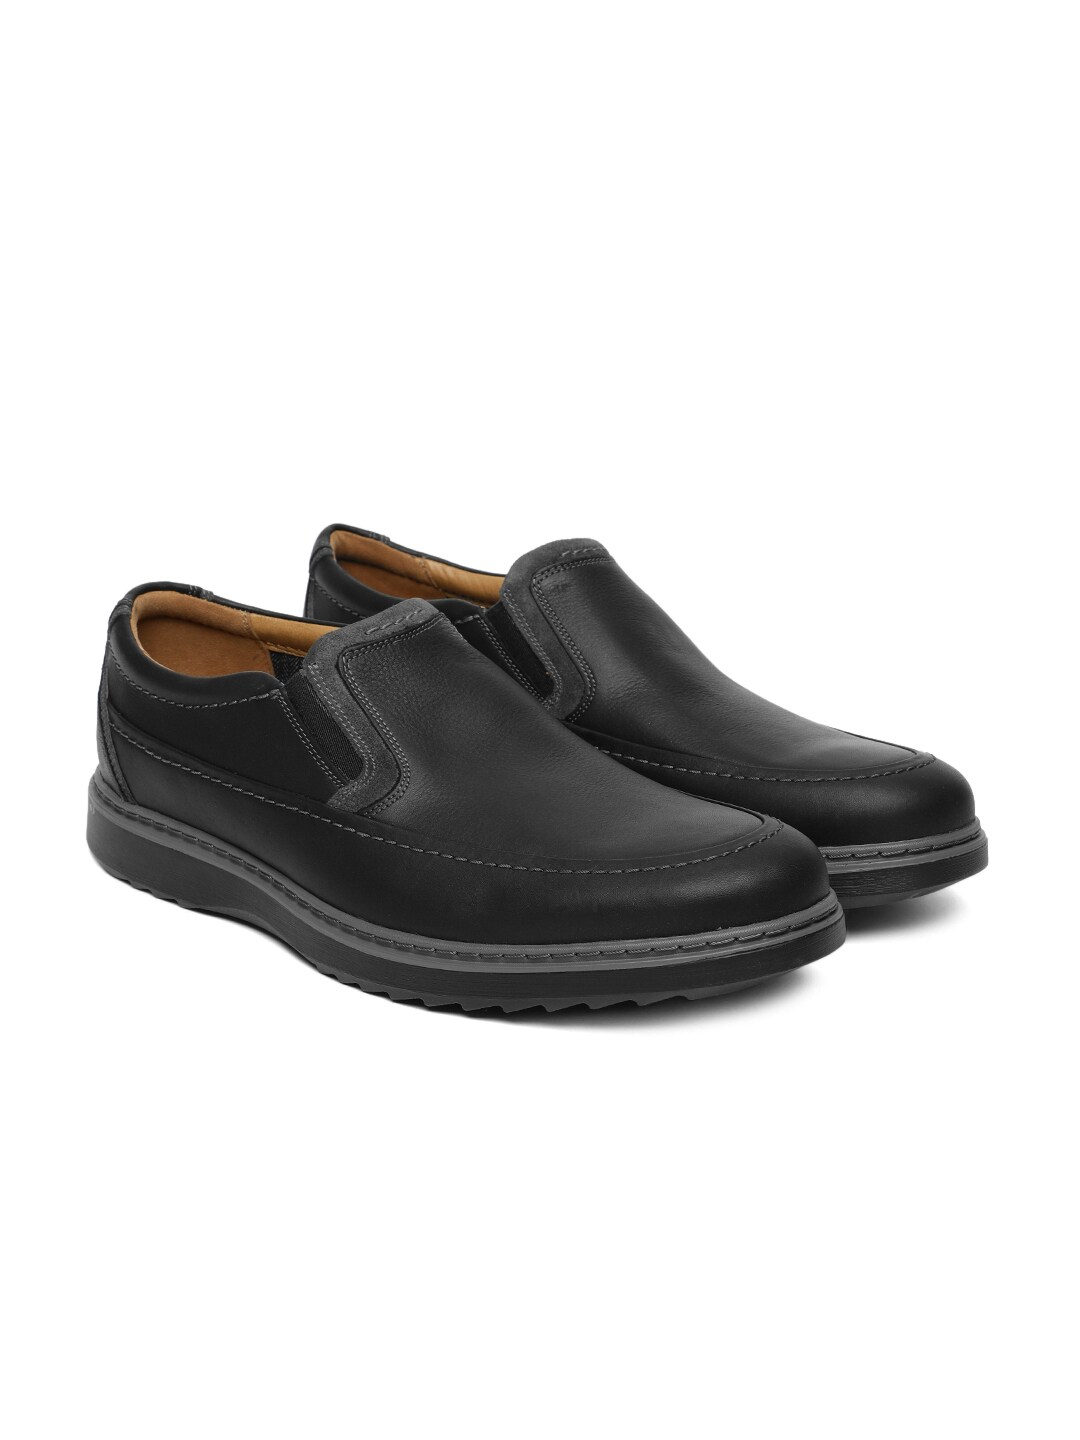 76b0e200ba80 CLARKS - Exclusive Clarks Shoes Online Store in India - Myntra